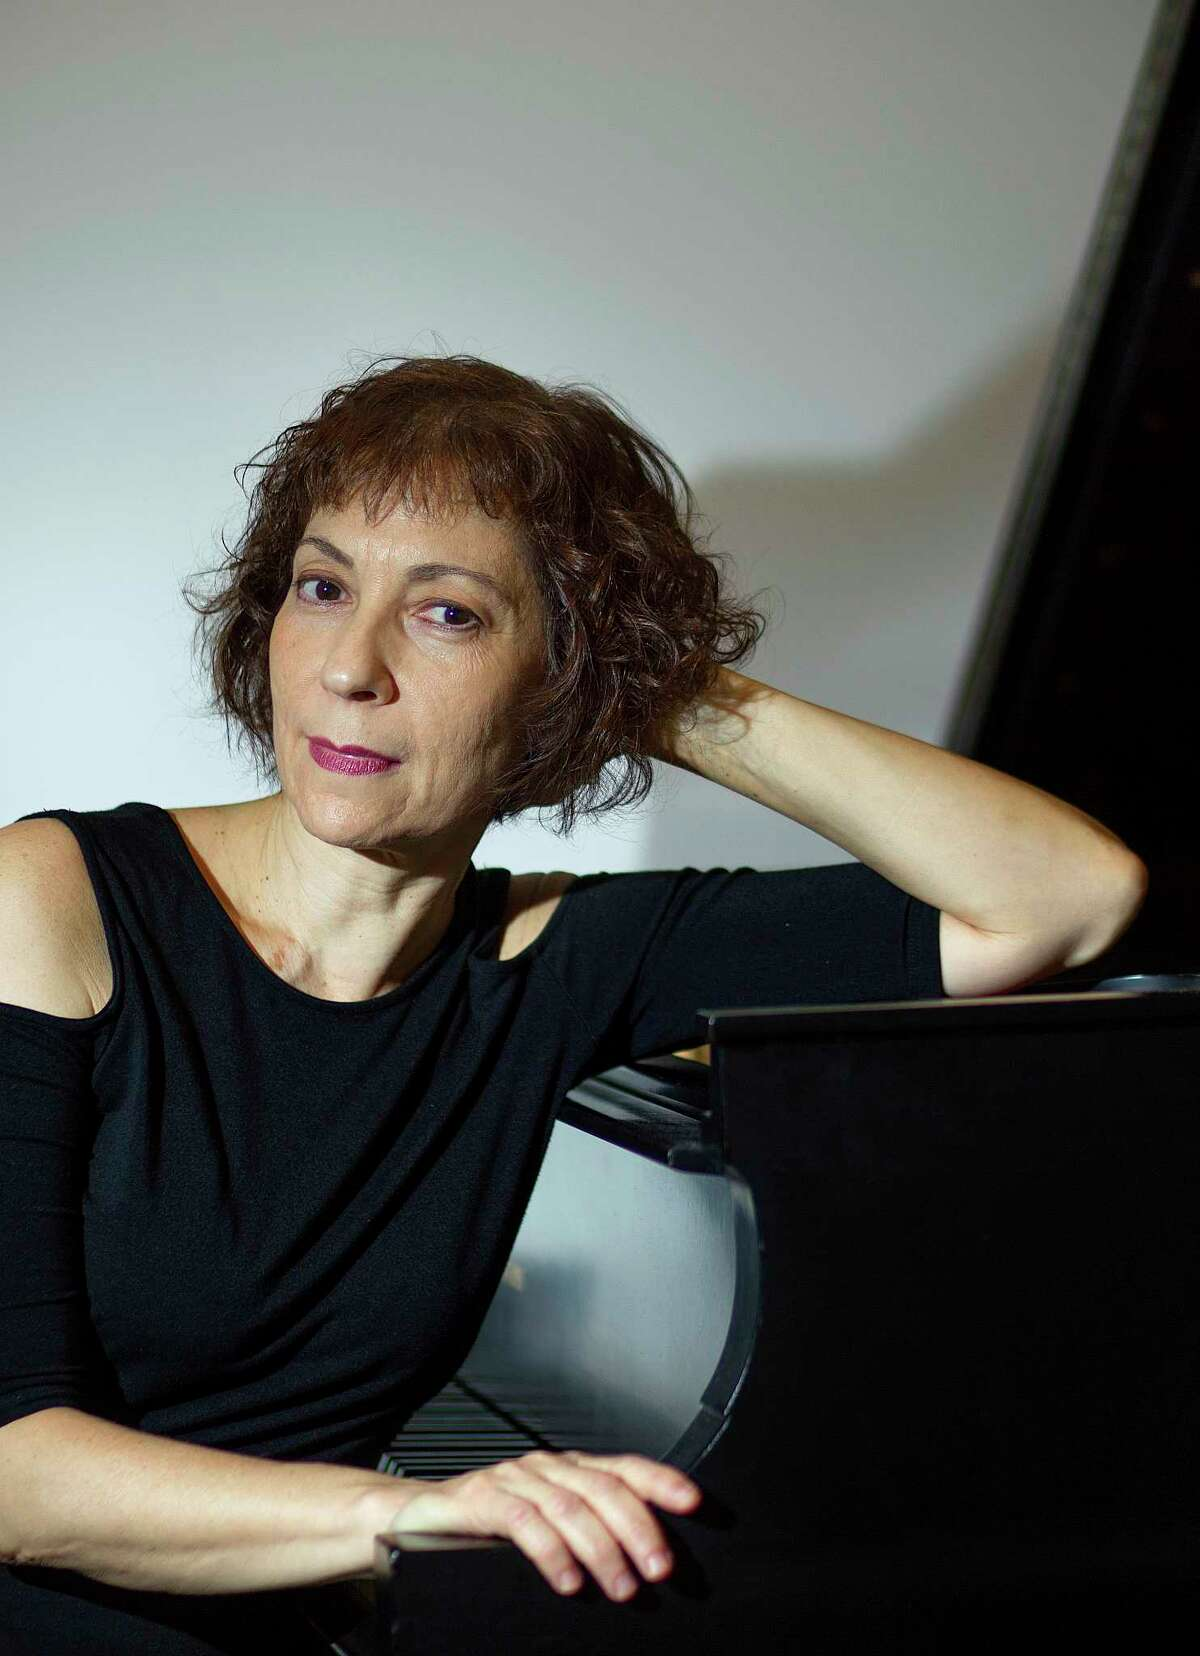 Sarah Rothenberg, a virtuoso pianist and fine arts programer who runs Da Camera, has a new CD out called Rothko Chapel on ECM. Rothenberg is photographed at Da Camera, across the street from the Rothko Chapel, Tuesday, Oct. 13, 2015, in Houston. ( Mark Mulligan / Houston Chronicle )